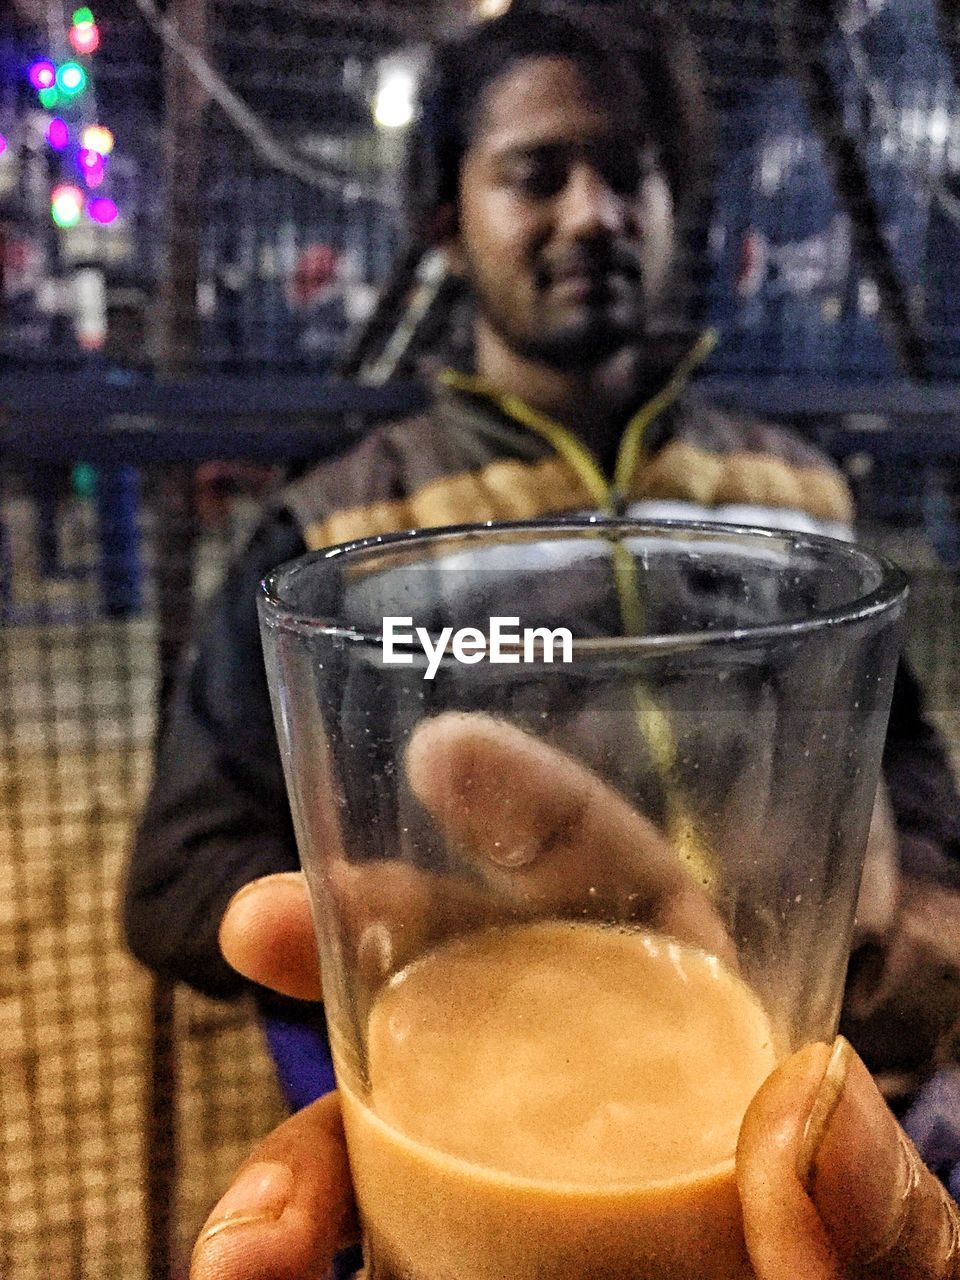 drink, real people, food and drink, holding, alcohol, focus on foreground, refreshment, drinking glass, leisure activity, lifestyles, human hand, men, night, one person, human body part, close-up, outdoors, illuminated, freshness, city, adult, people, adults only